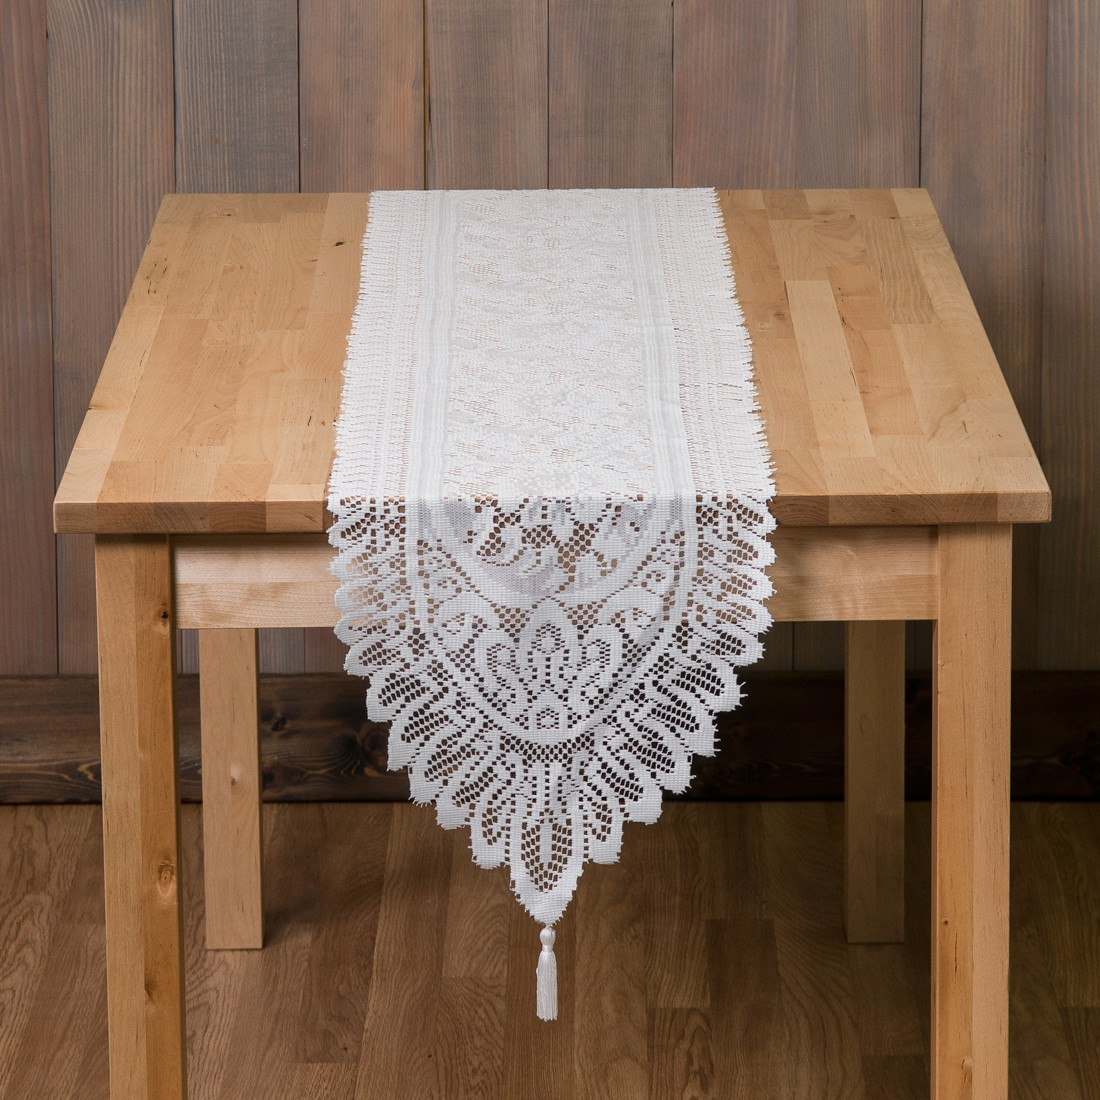 Lace Table Runners | Lace Doily Table Runner | Wholesale Table Runners